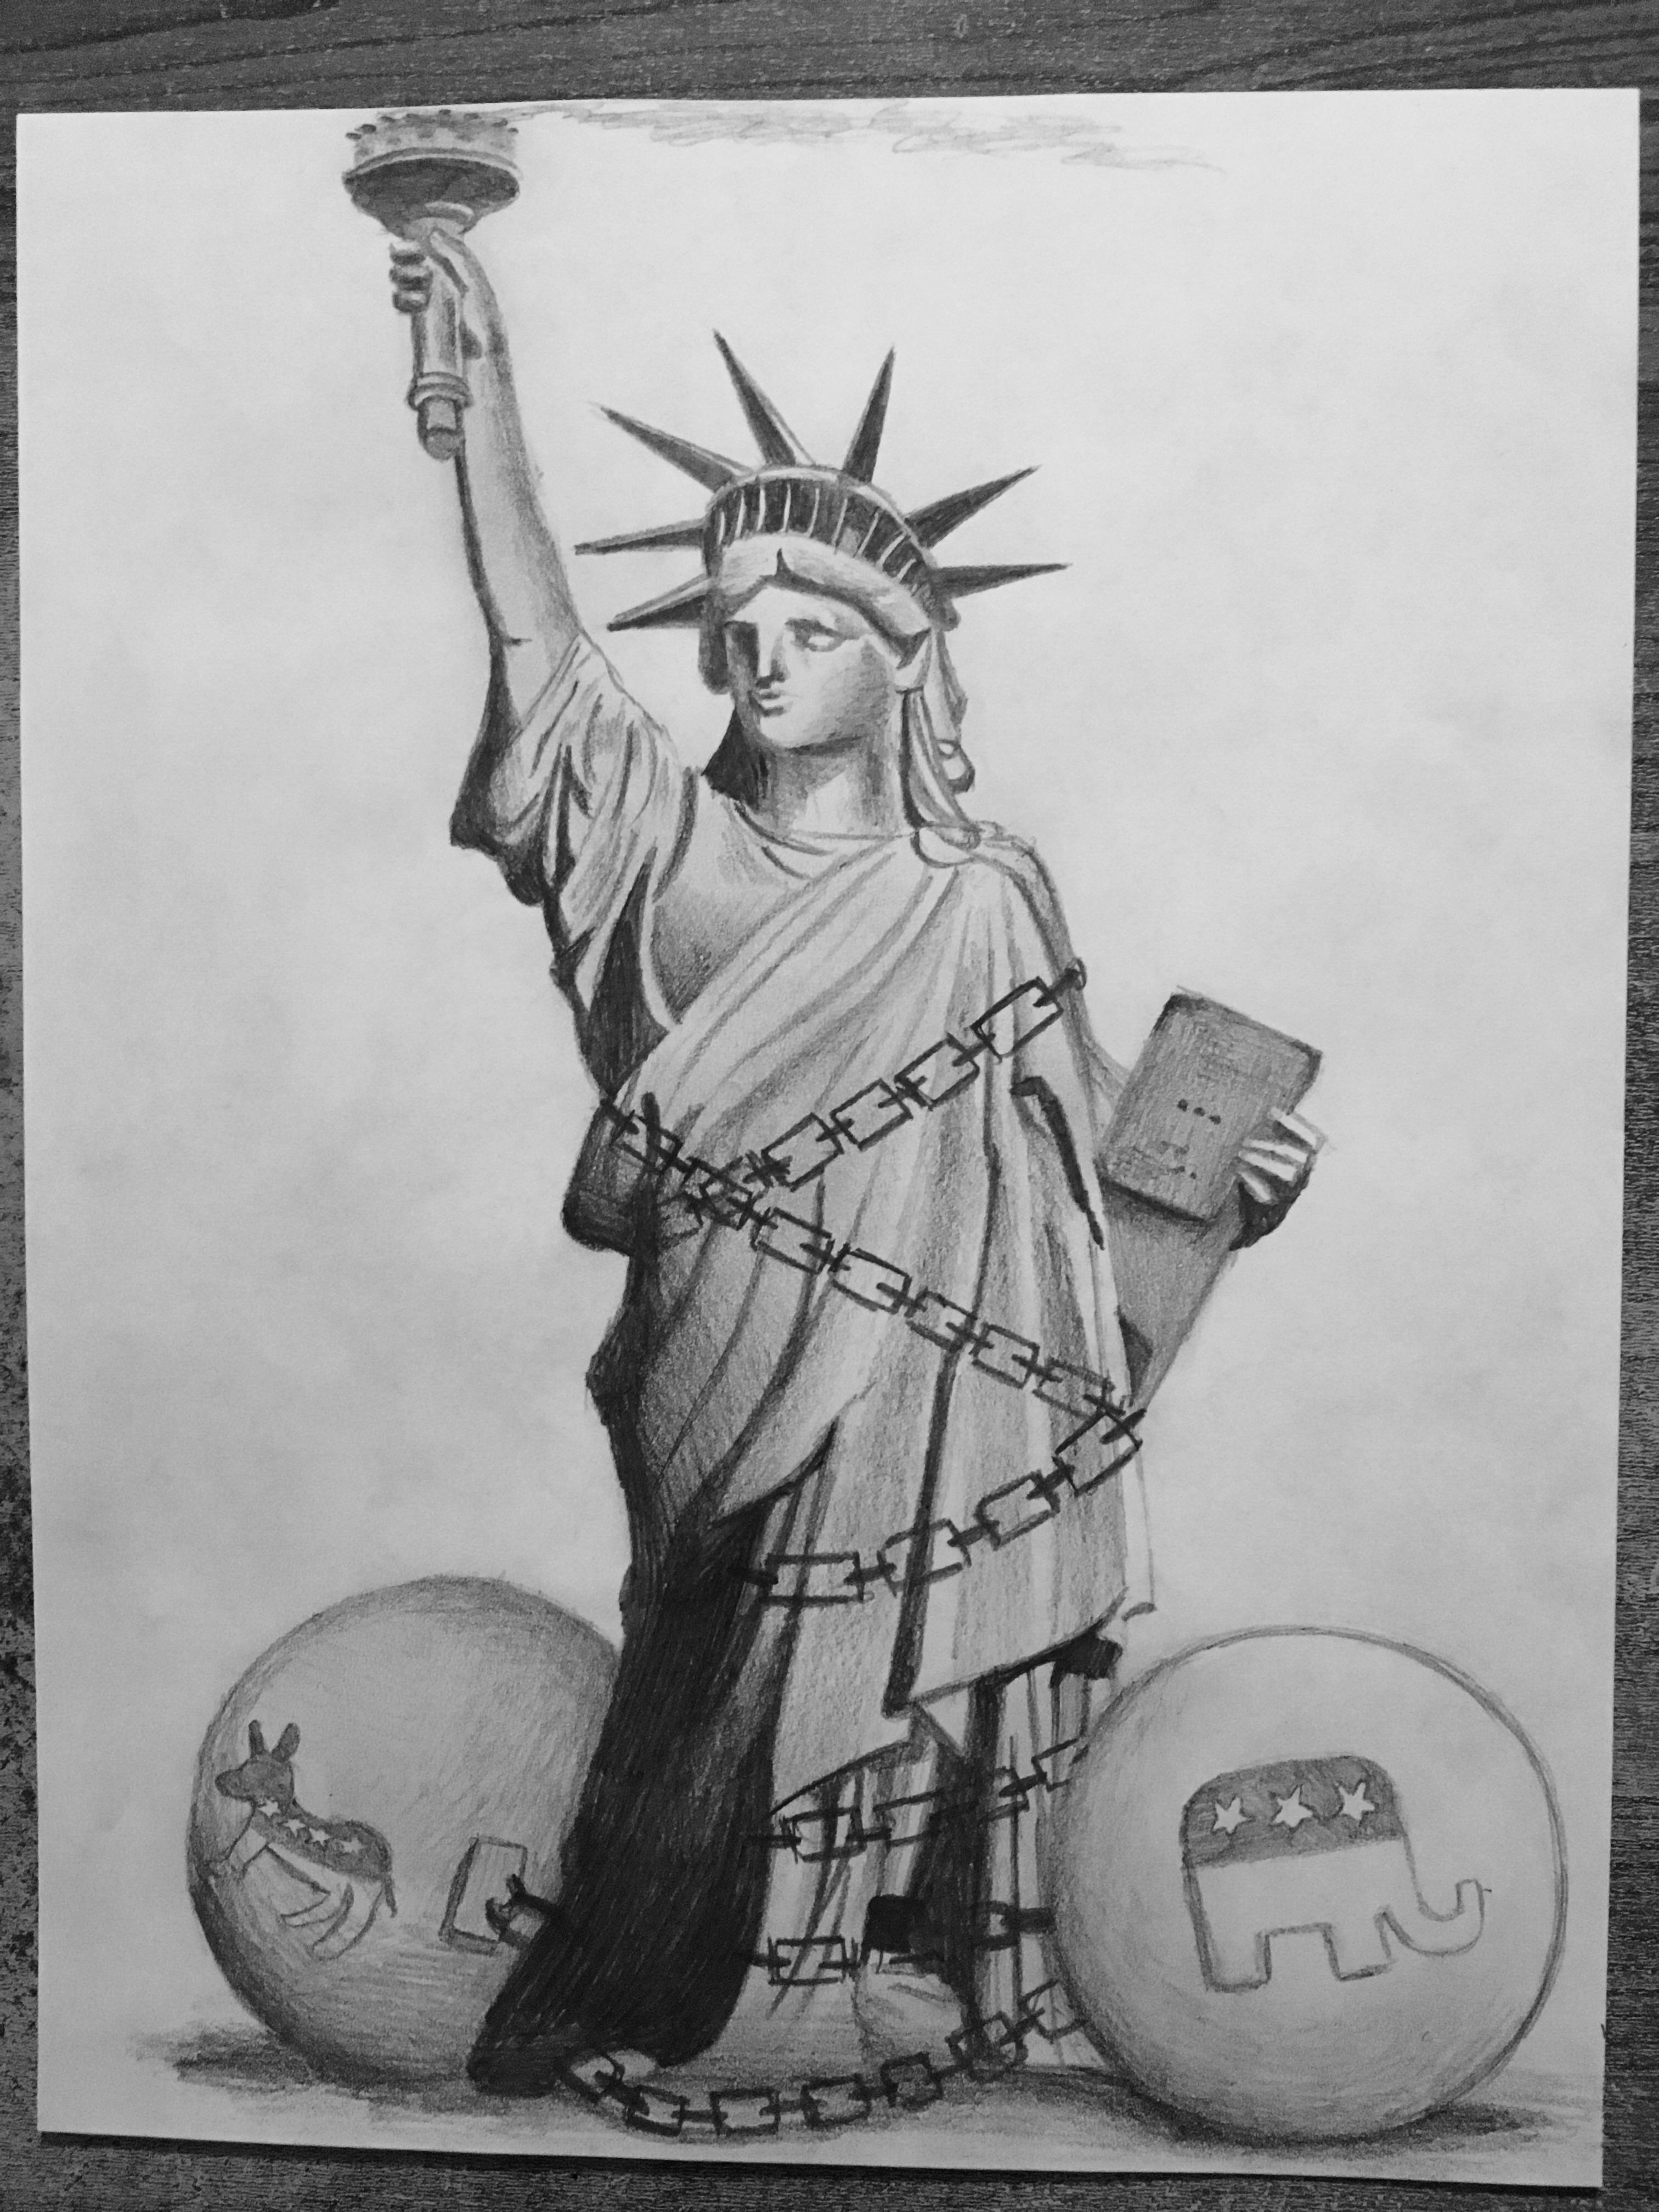 statue of liberty pencil drawing download high quality statue of liberty clipart sketch liberty pencil drawing of statue